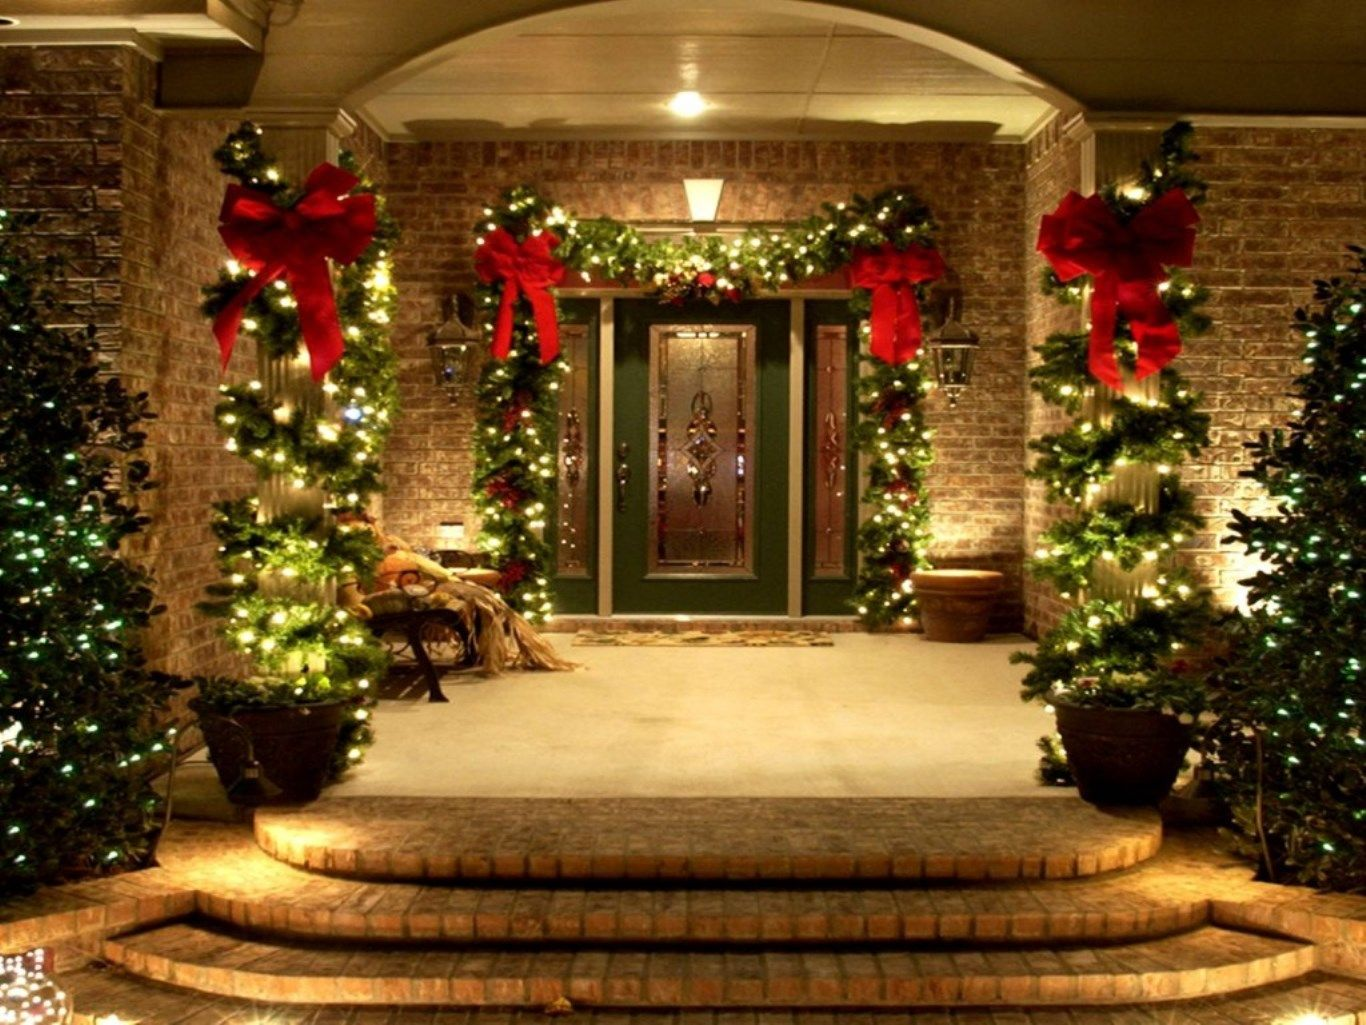 Outside Christmas Decorations.10 Tips For Decorating Your Home For Sale During The